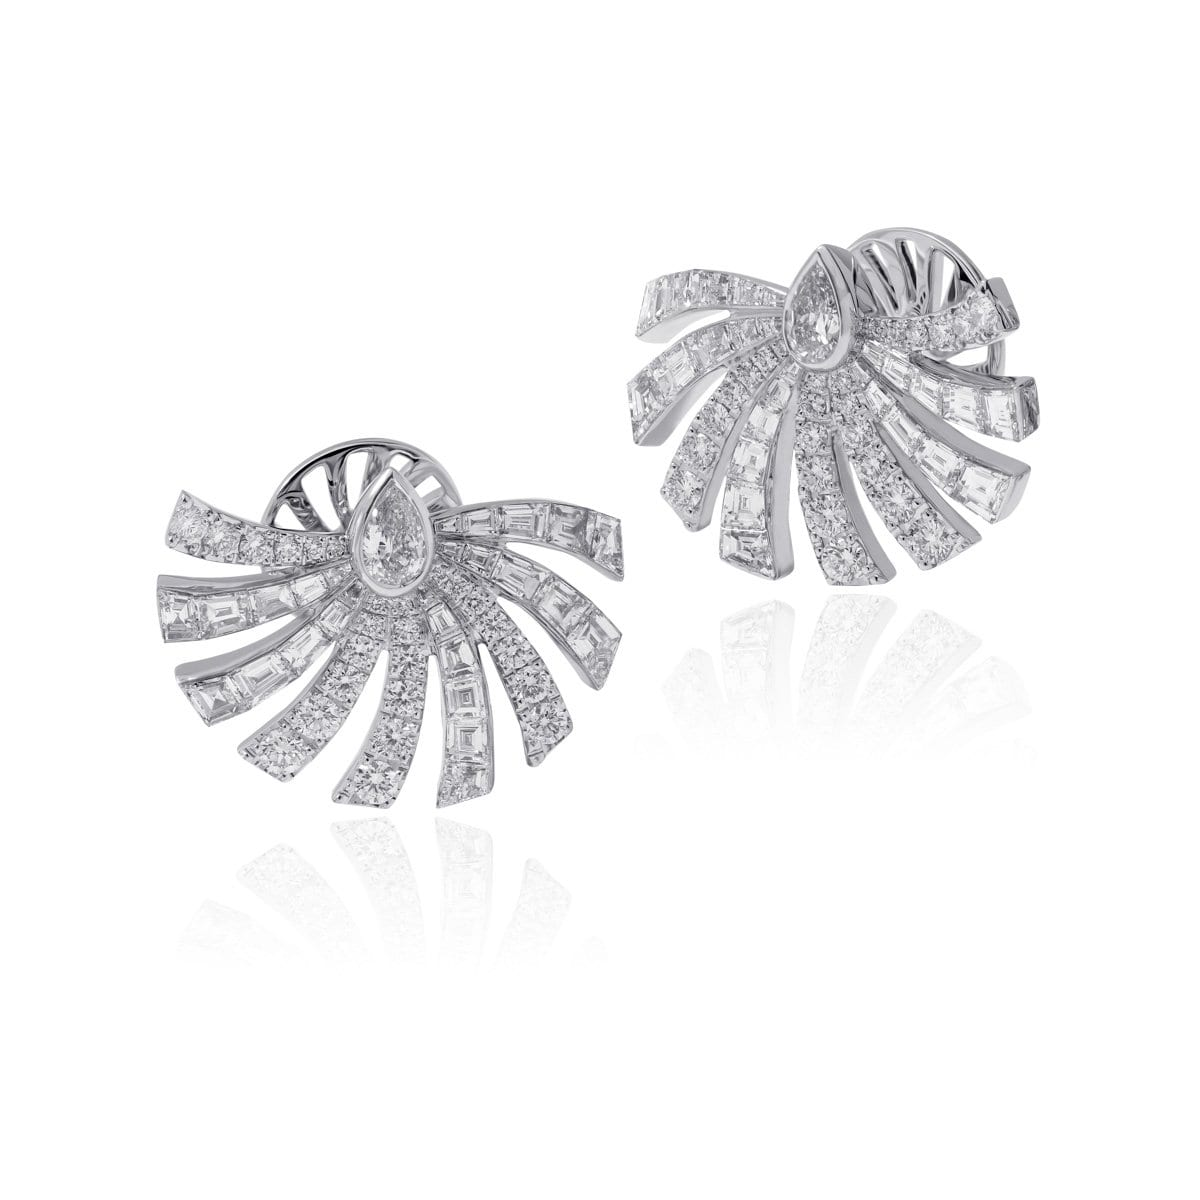 PERSUASION WHITE Earrings - STENZHORN JEWELLERY